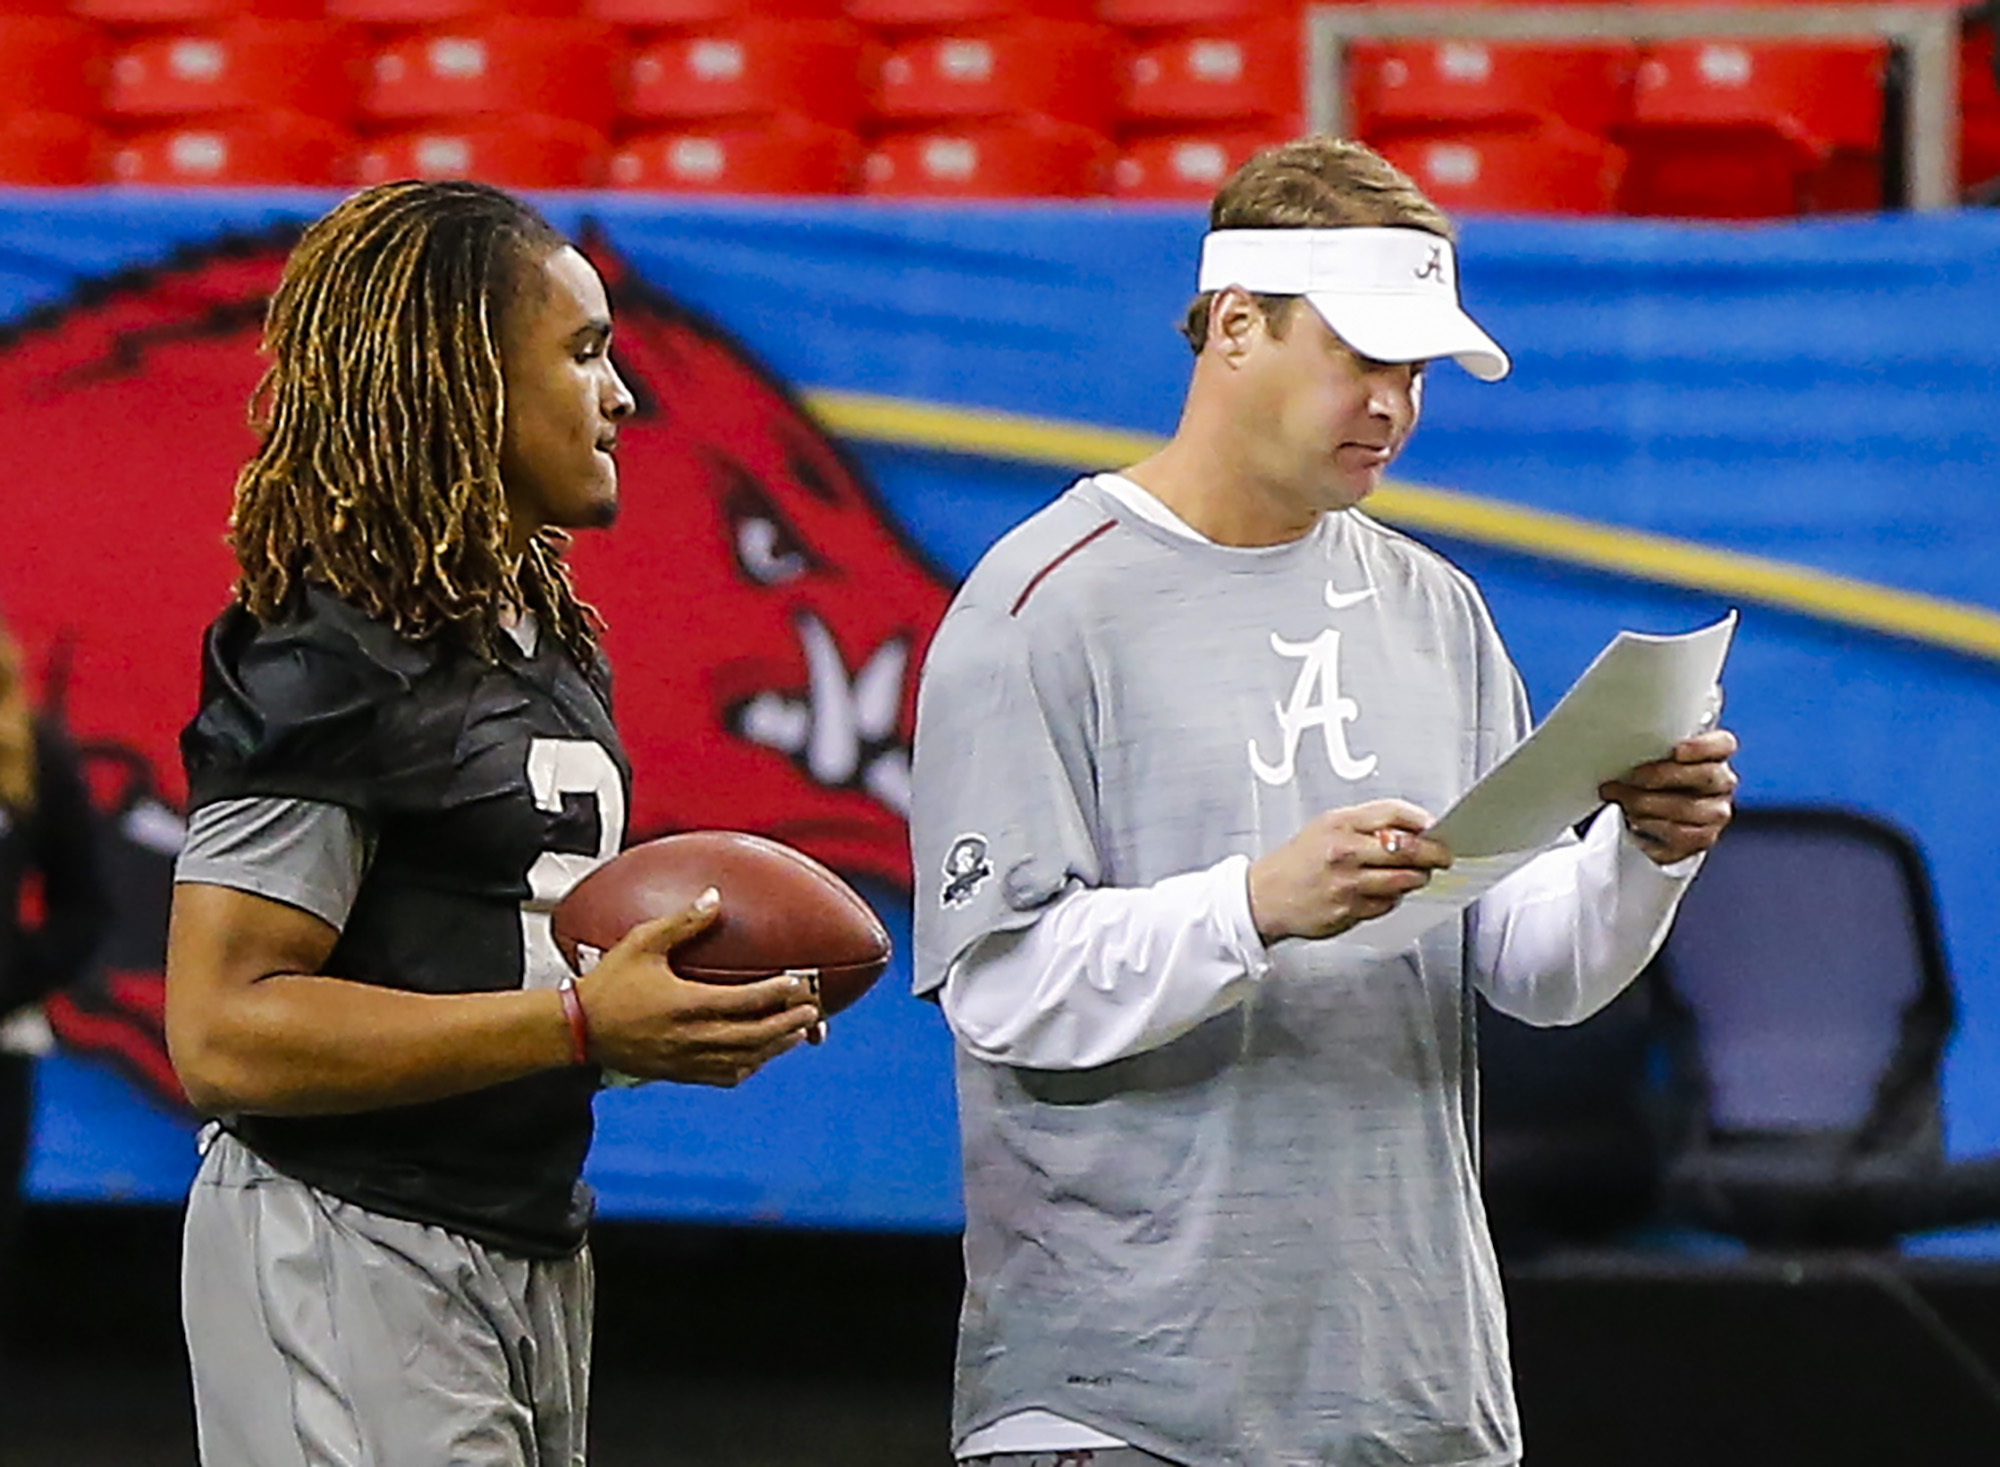 Alabama offensive coordinator Lane Kiffin, right, talks with quarterback Jalen Hurts (2) during practice for the Southeastern Conference Championship NCAA college football game where they will play Florida, Friday, Dec. 2, 2016, in Atlanta. (AP Photo/Butc